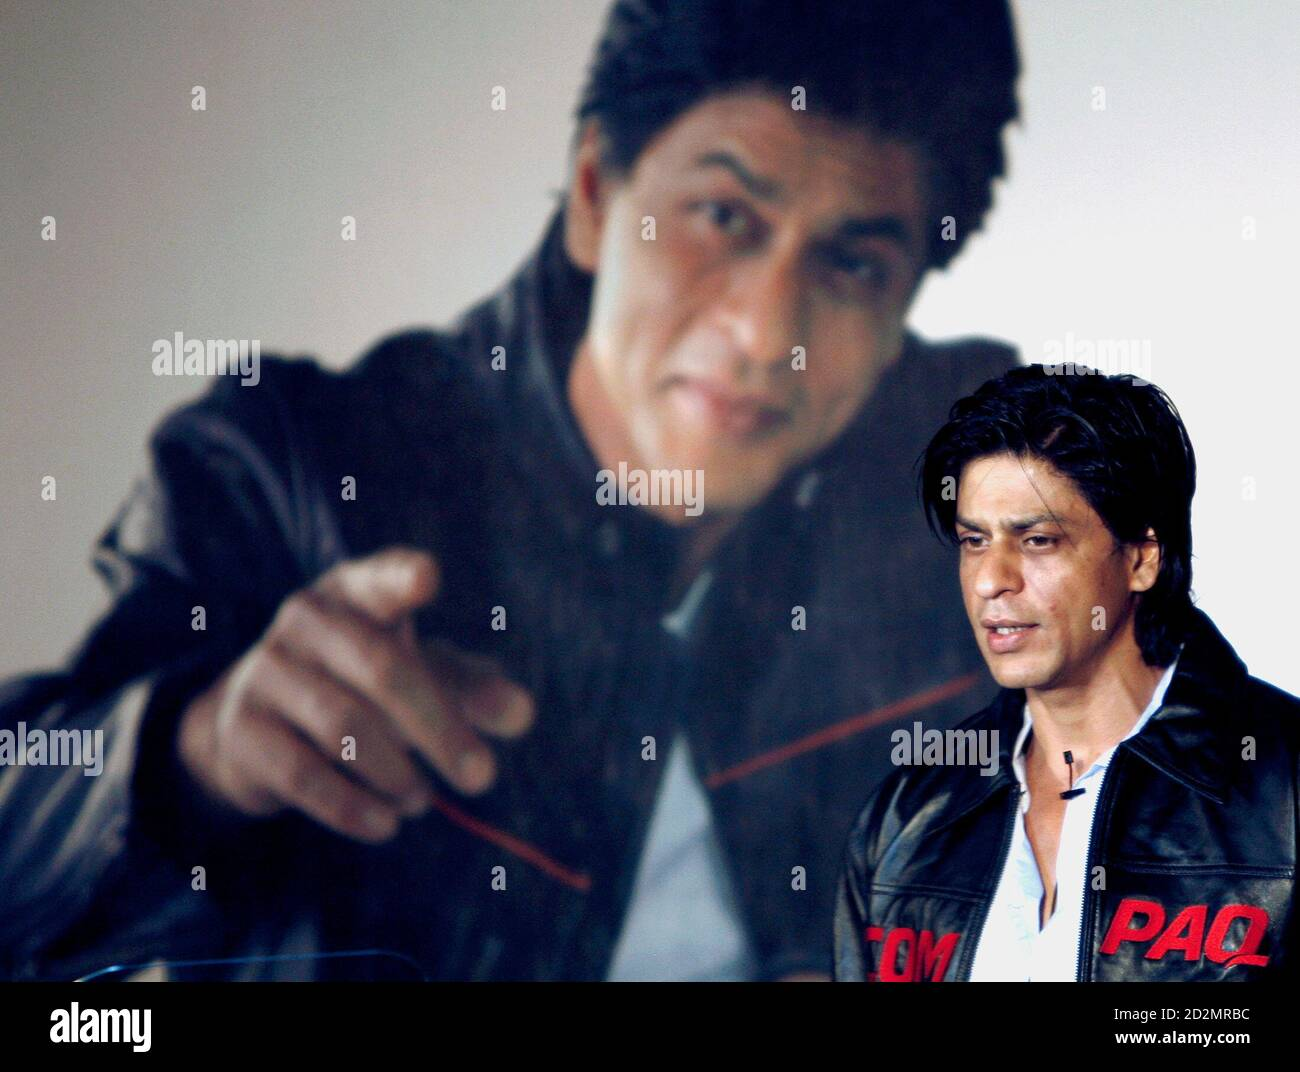 Bollywood actor Shah Rukh Khan speaks during a promotional event for Compaq computers, an information technology company, in Mumbai July 24, 2007. REUTERS/Punit Paranjpe (INDIA) Stock Photo